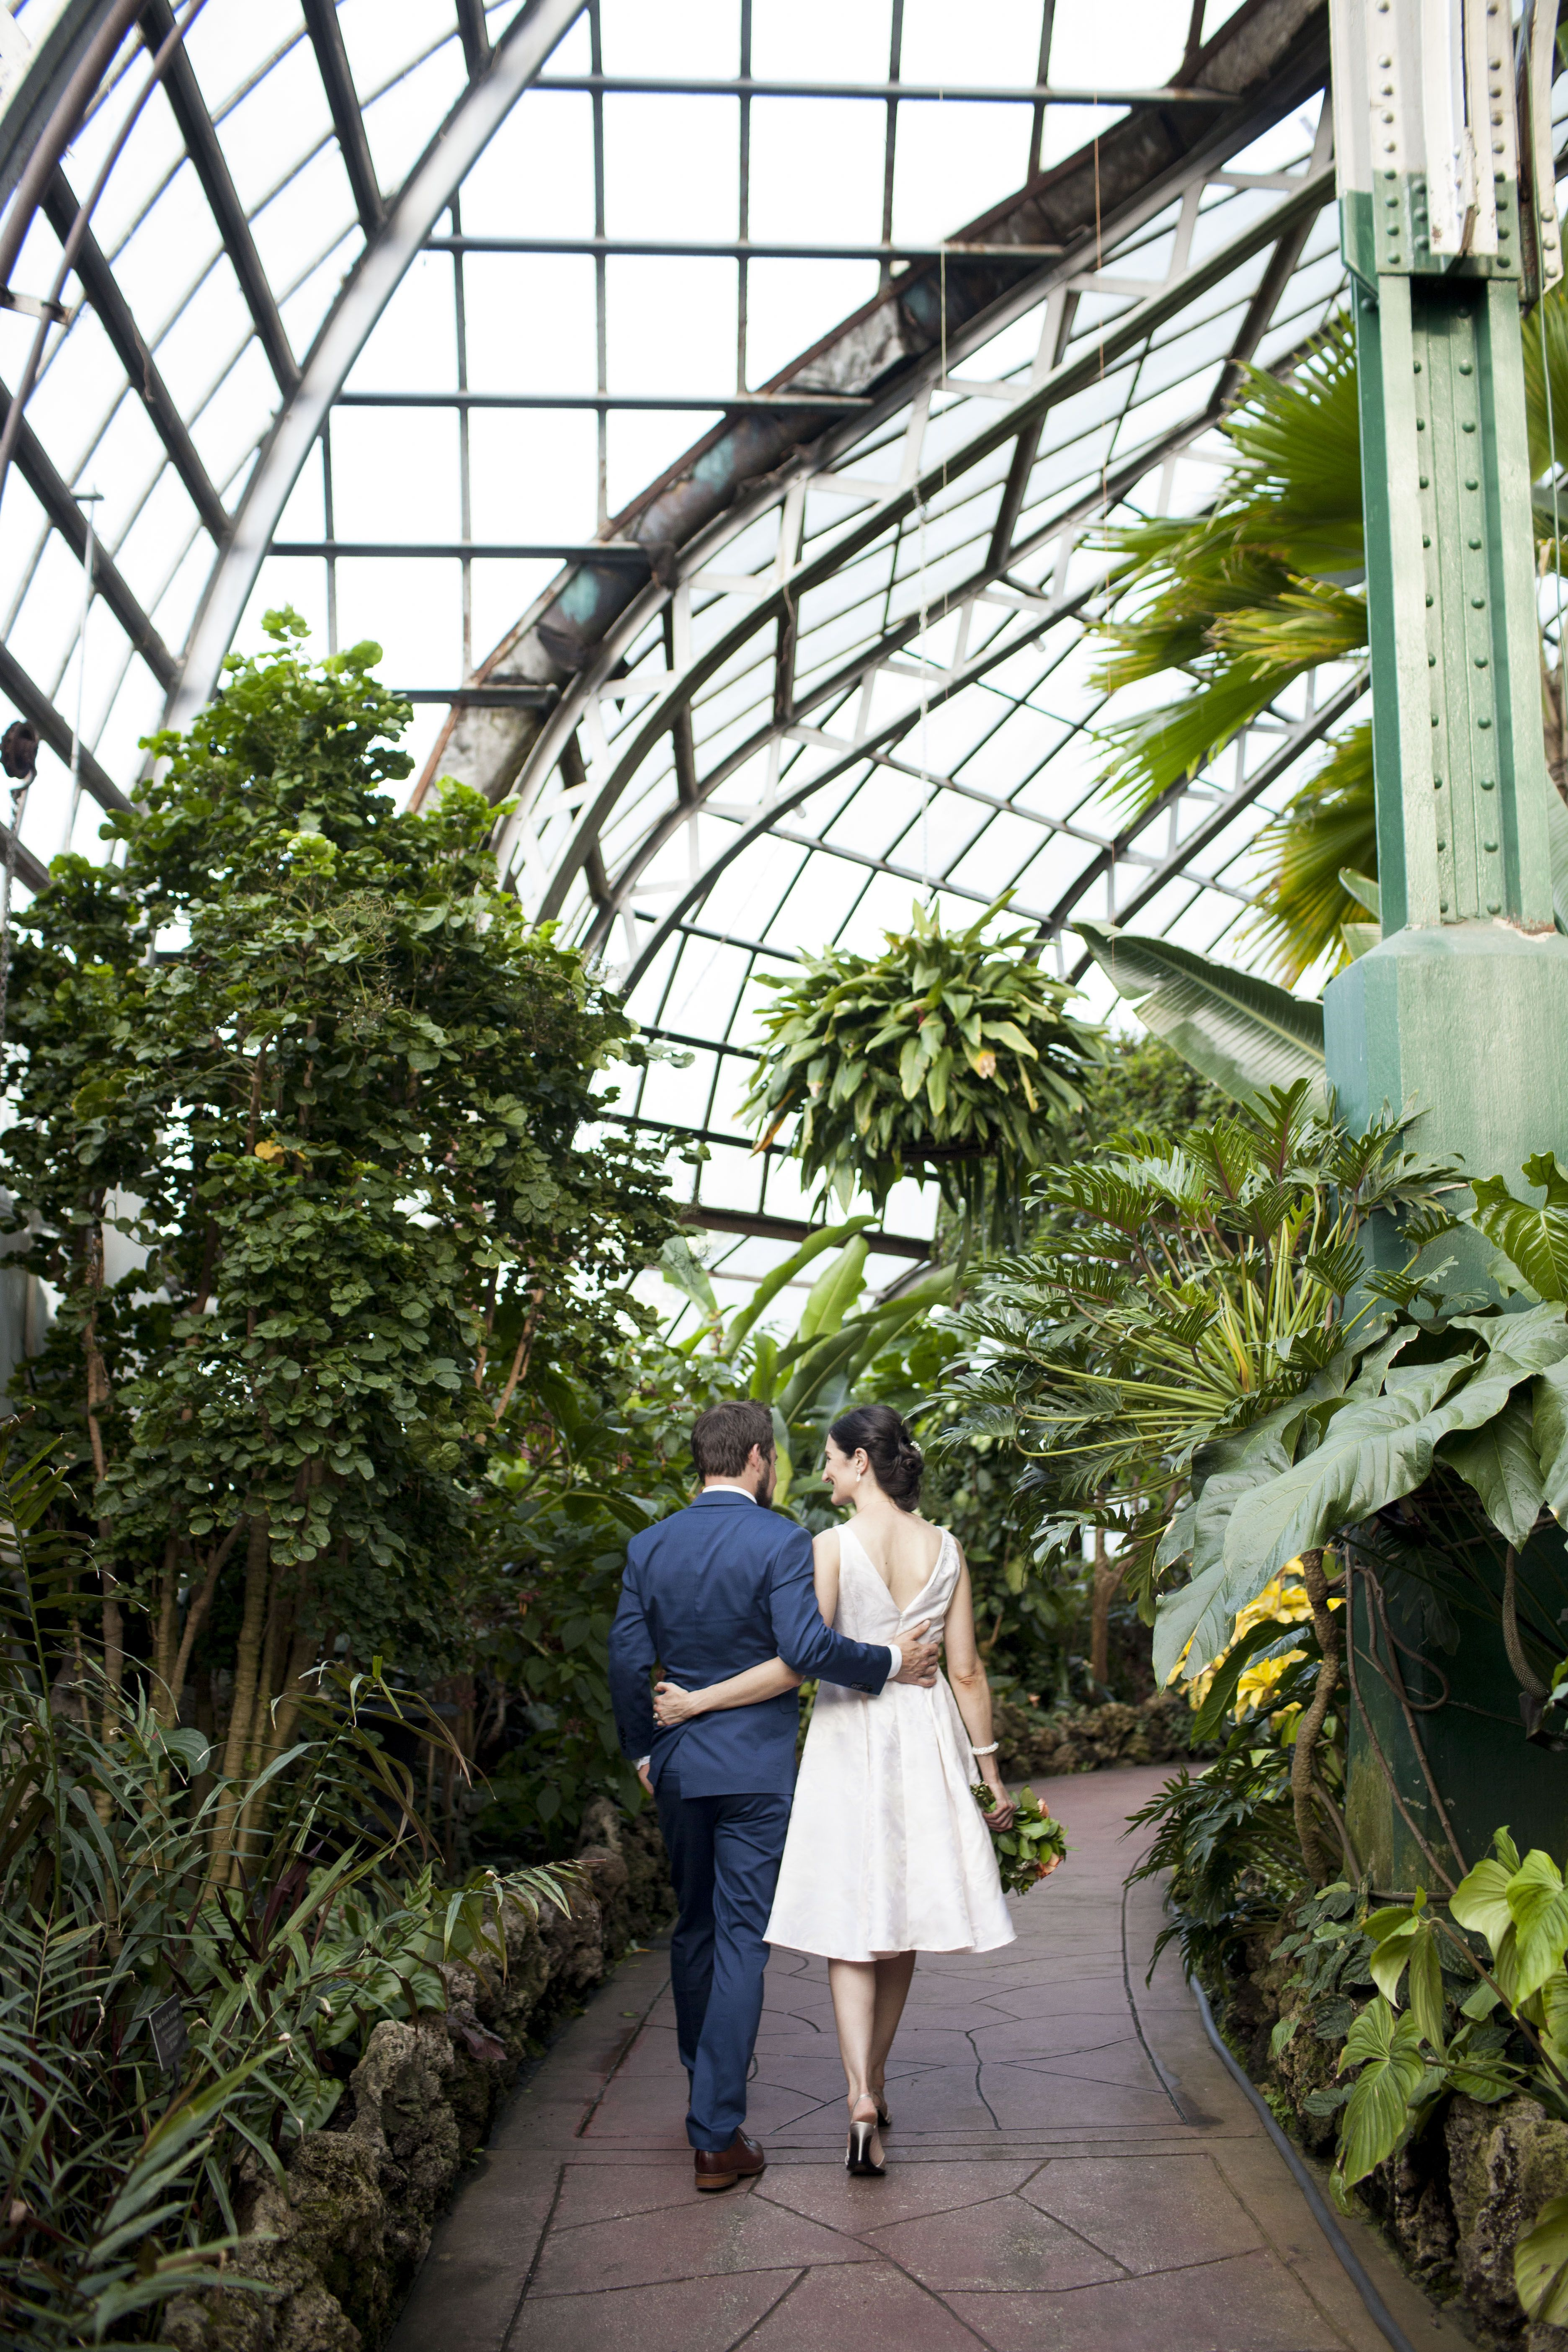 Lincoln Park Conservatory Intimate Wedding Photos By Natalie Probst Photography